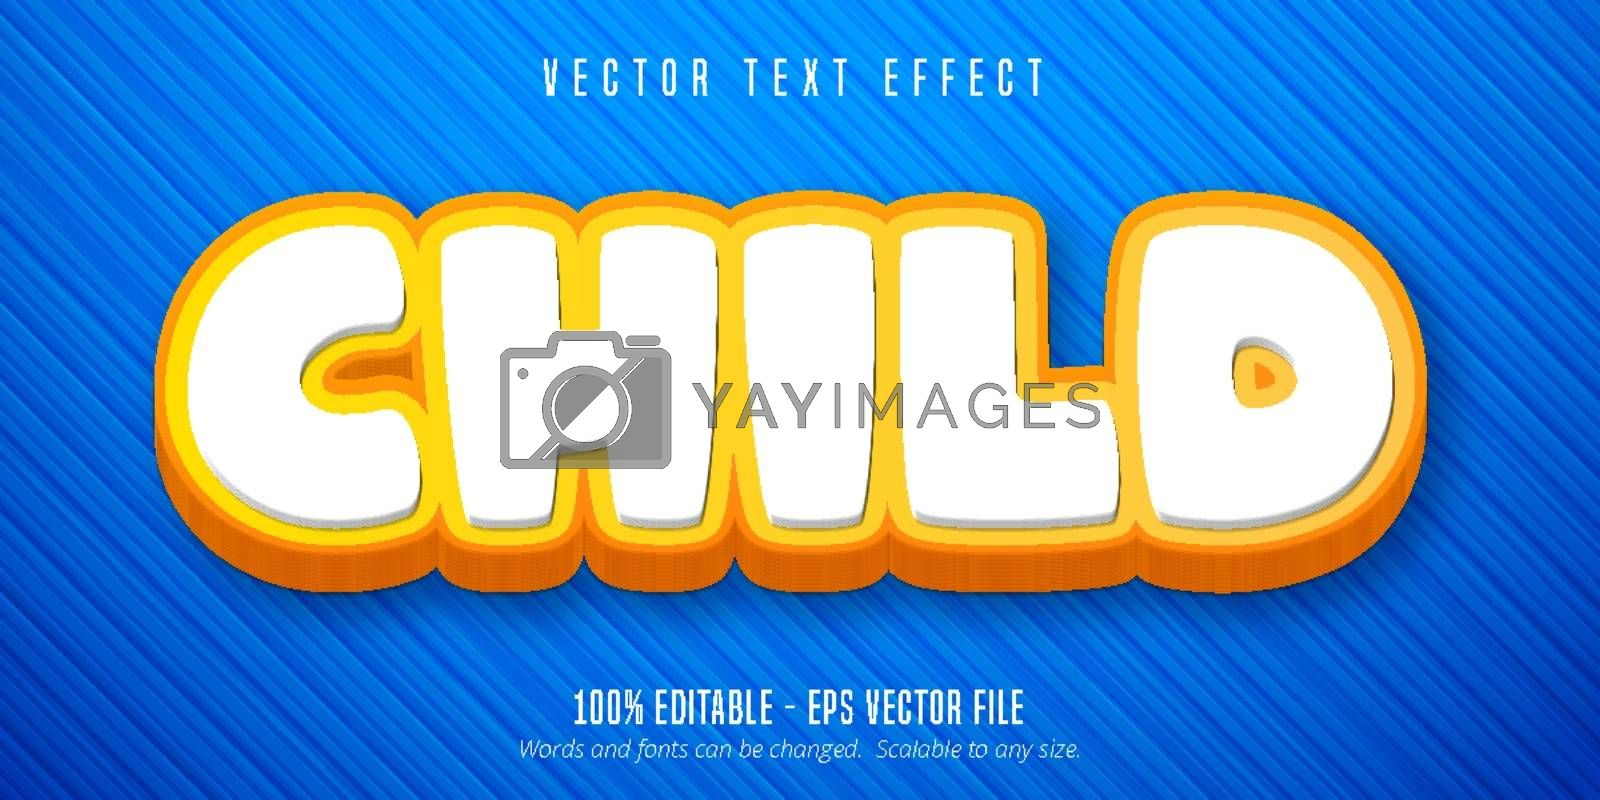 Child text, cartoon style editable text effect